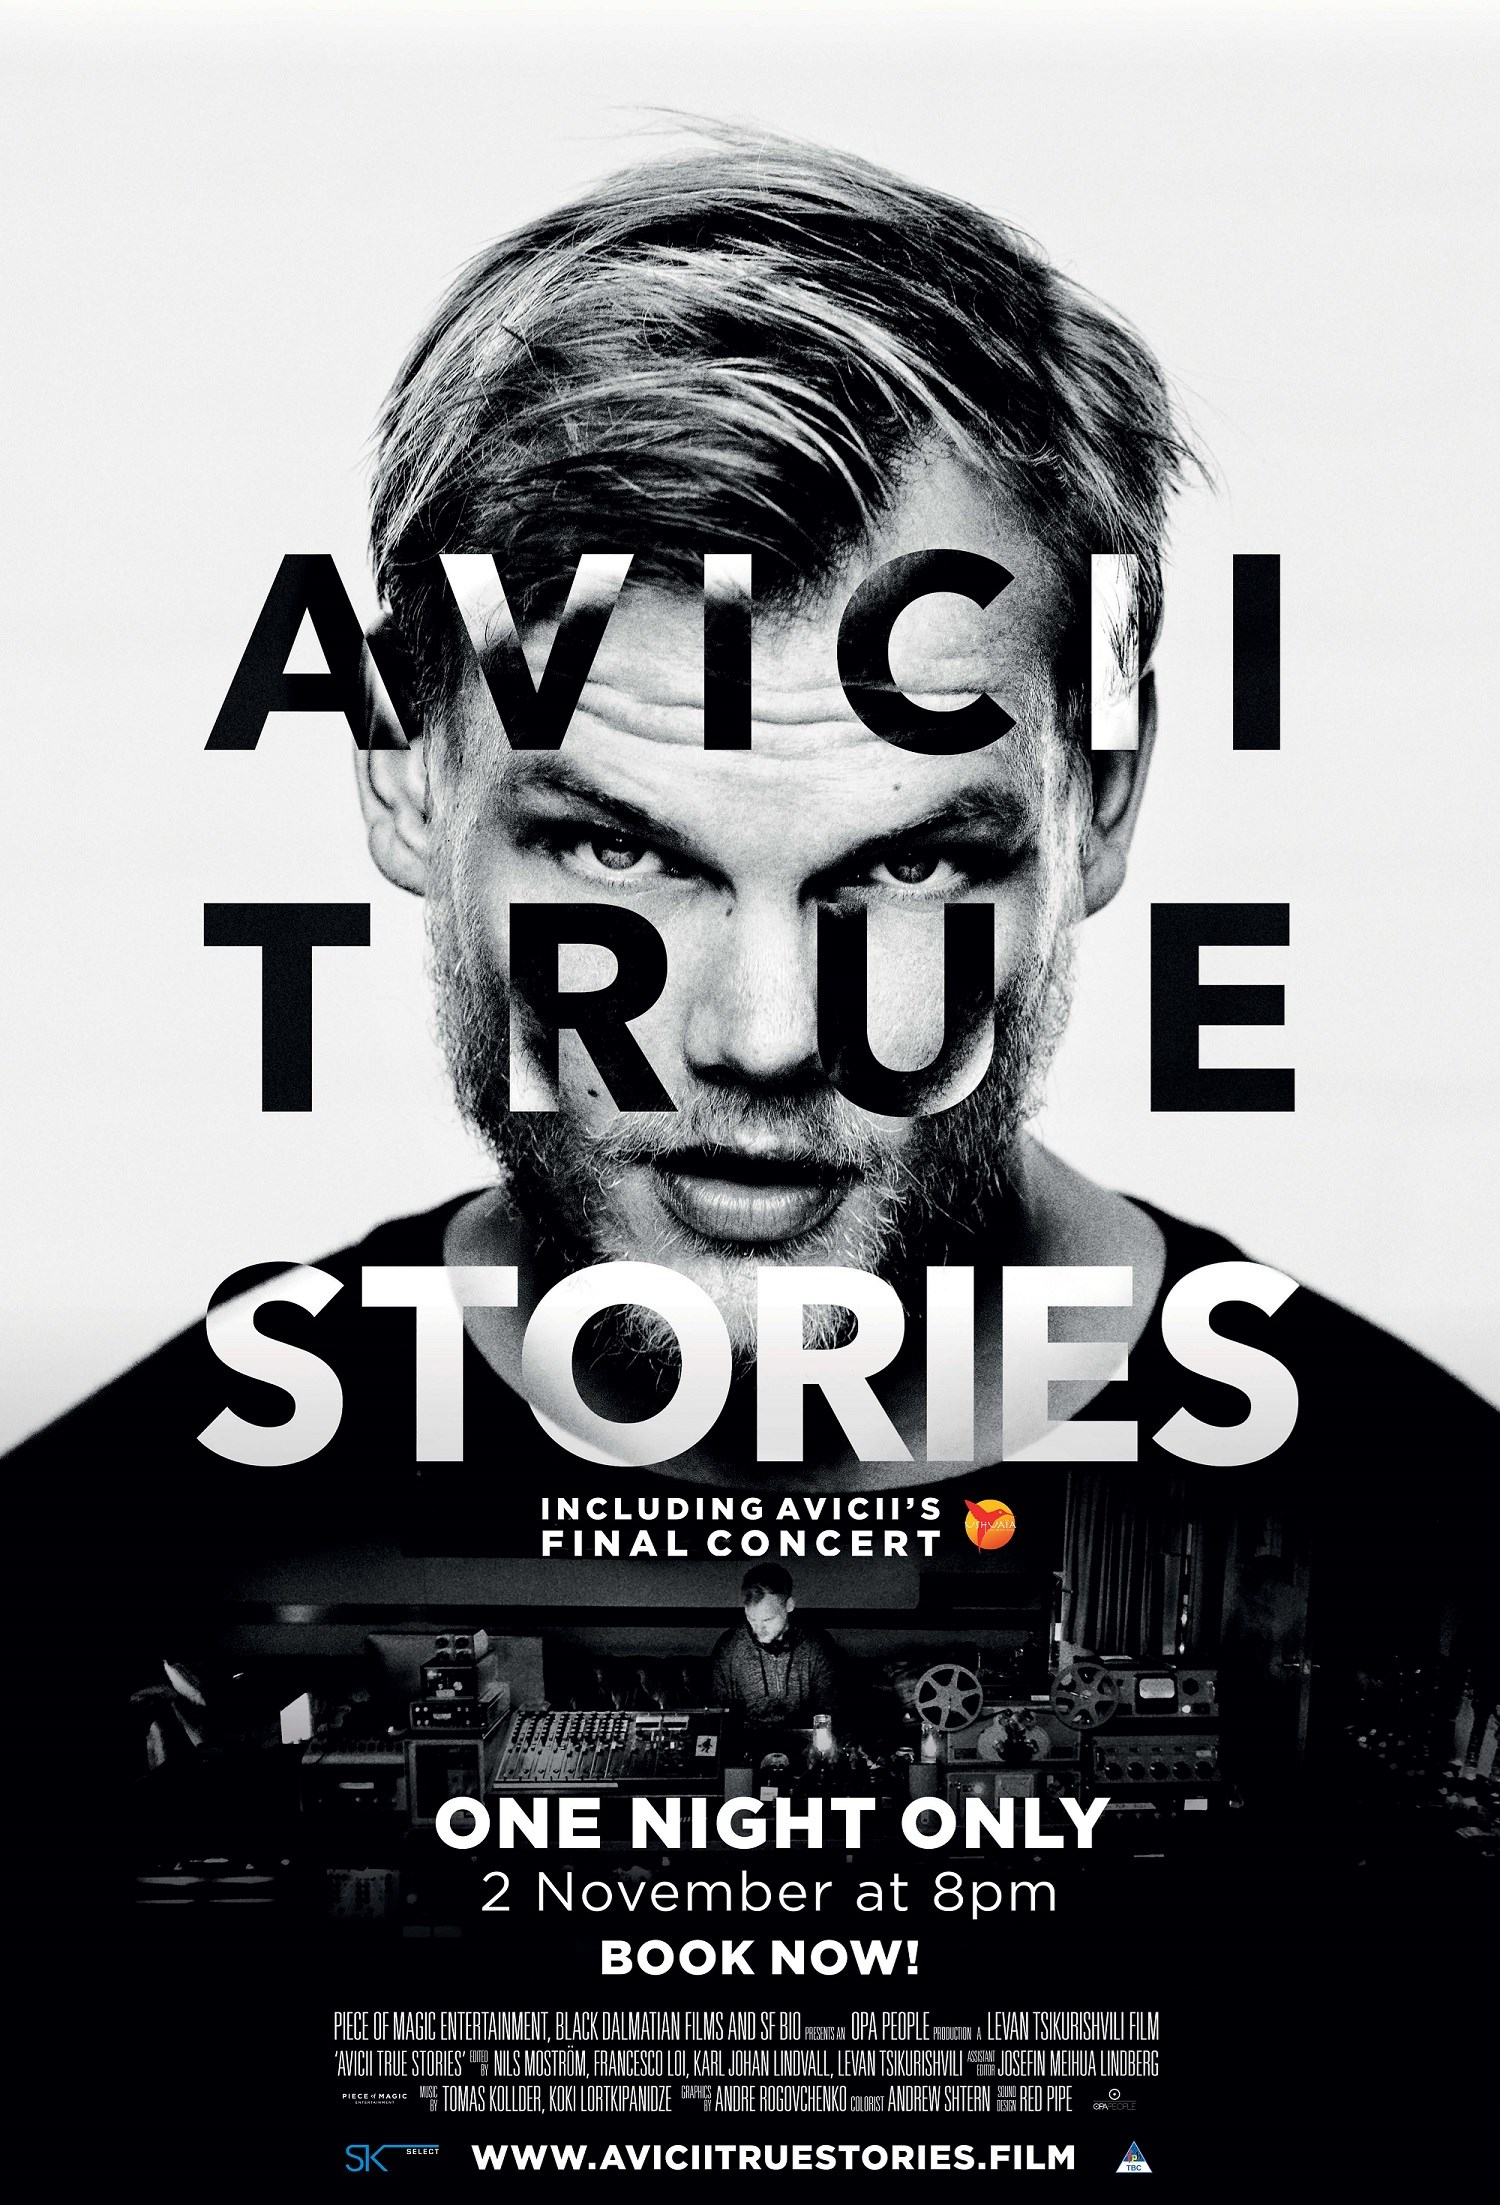 AVICII TRUE STORIES now showing at Cavendish Square